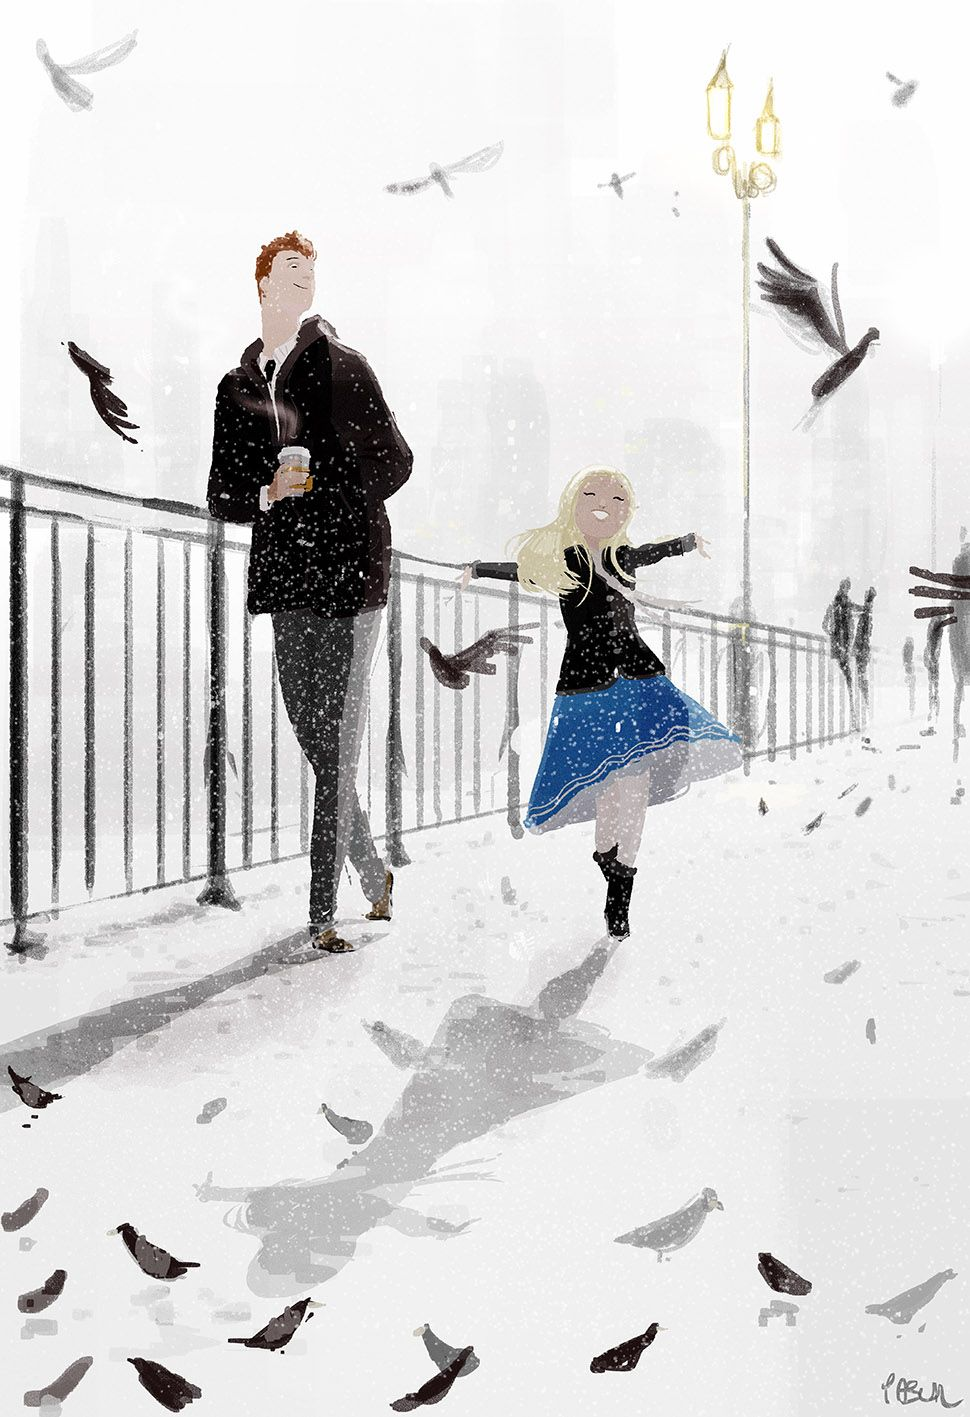 It snowed in March! #pascalcampion